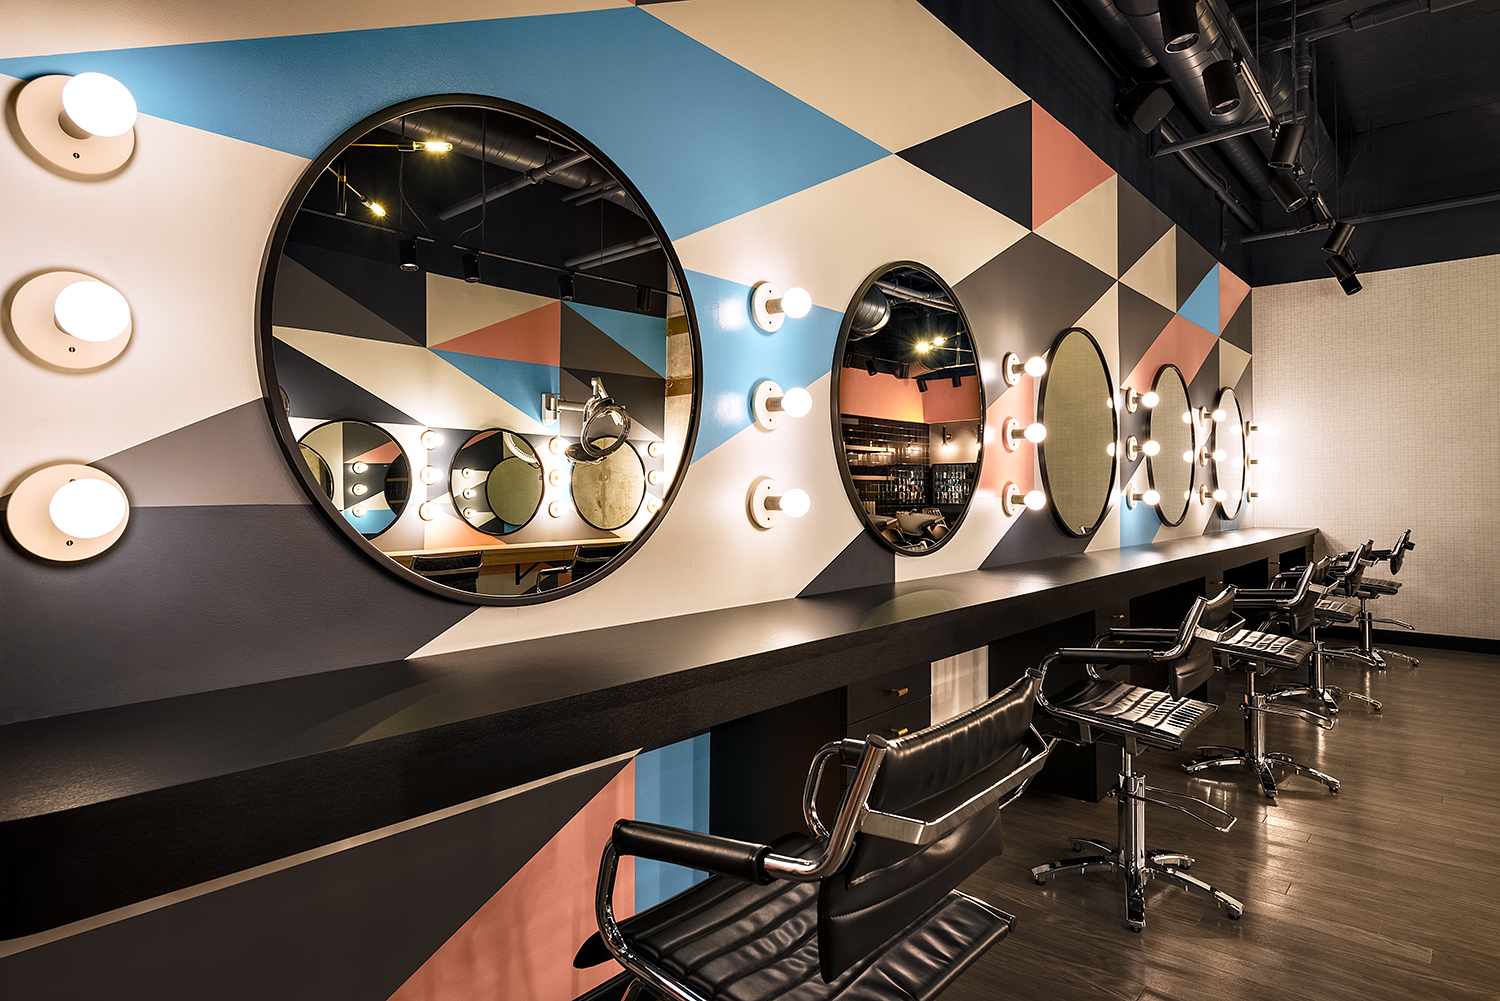 SALON TOUR: Boss Hair Group in River North, Chicago